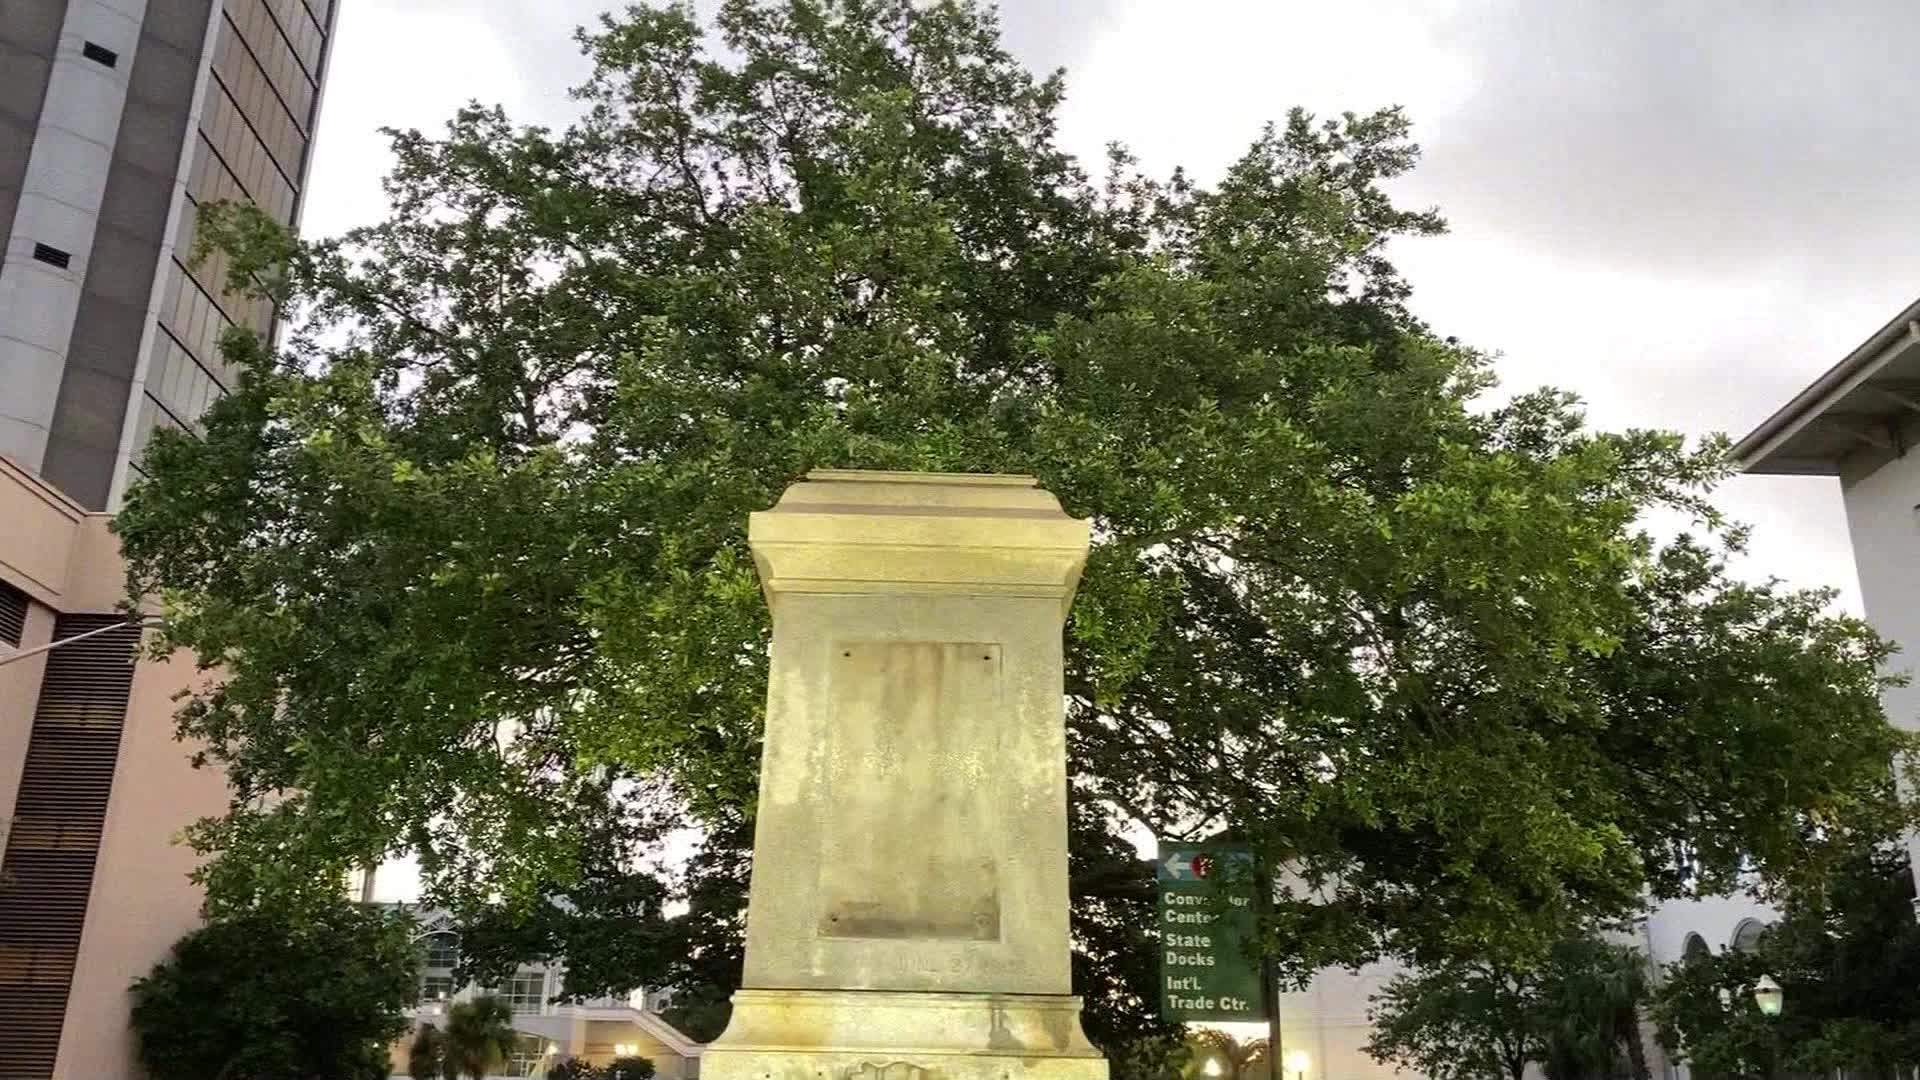 Confederate monument removed overnight in Mobile, Alabama